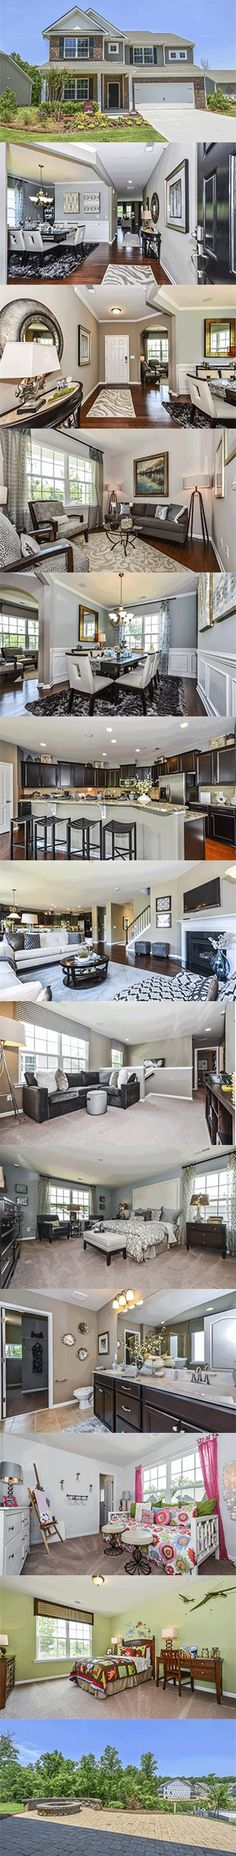 A 4 bedroom, 3.5 bath home featuring a large kitchen open to a family room, formal dining and living room, an optional study, a spacious owner's suite upstairs, plus a bonus room or optional 5th bedroom and loft.